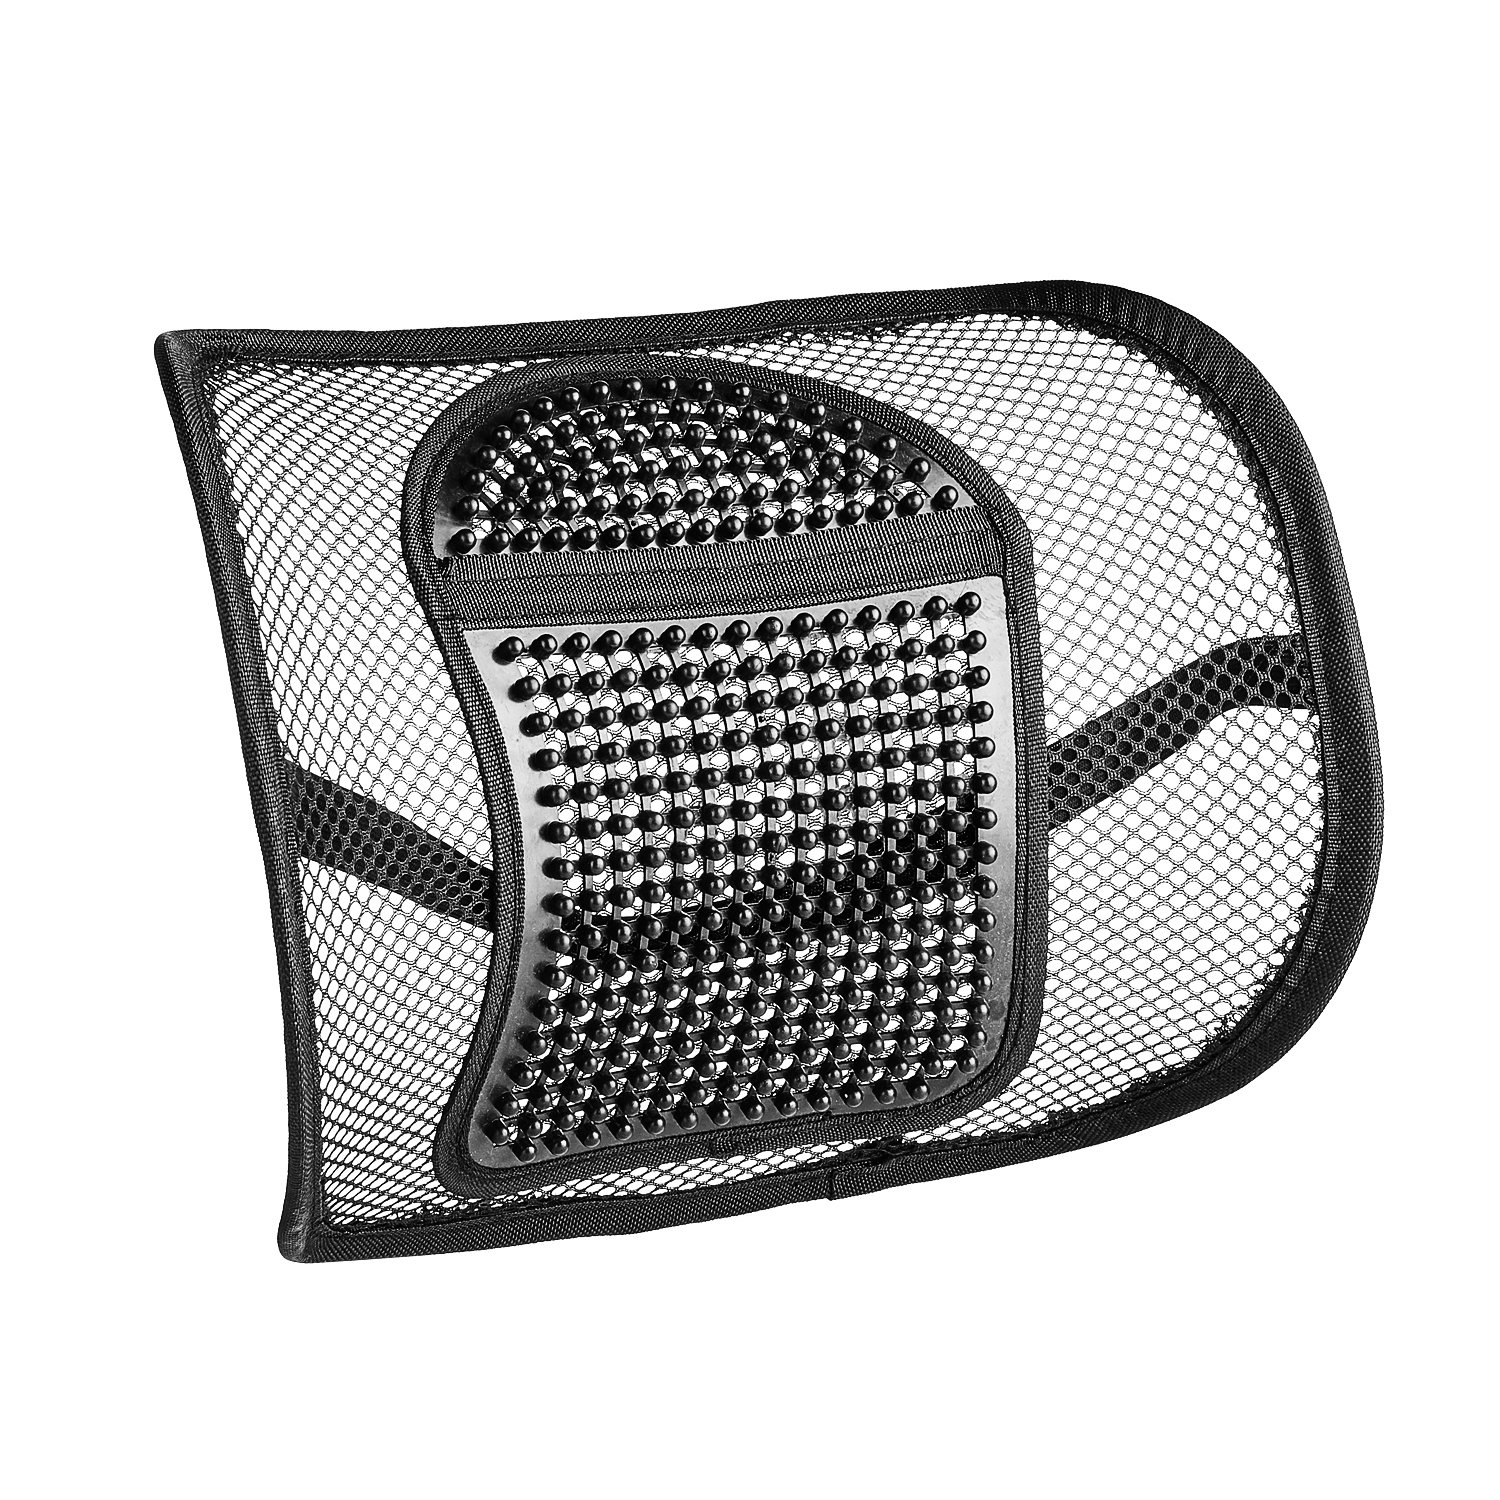 SERMICLE Lumbar Support Mesh,Vekey Back Support Mesh Back Cushion Breathable Comfortable Adjustable for All Types Car Seat Office Chair (PP Fiber Mesh, Standard)